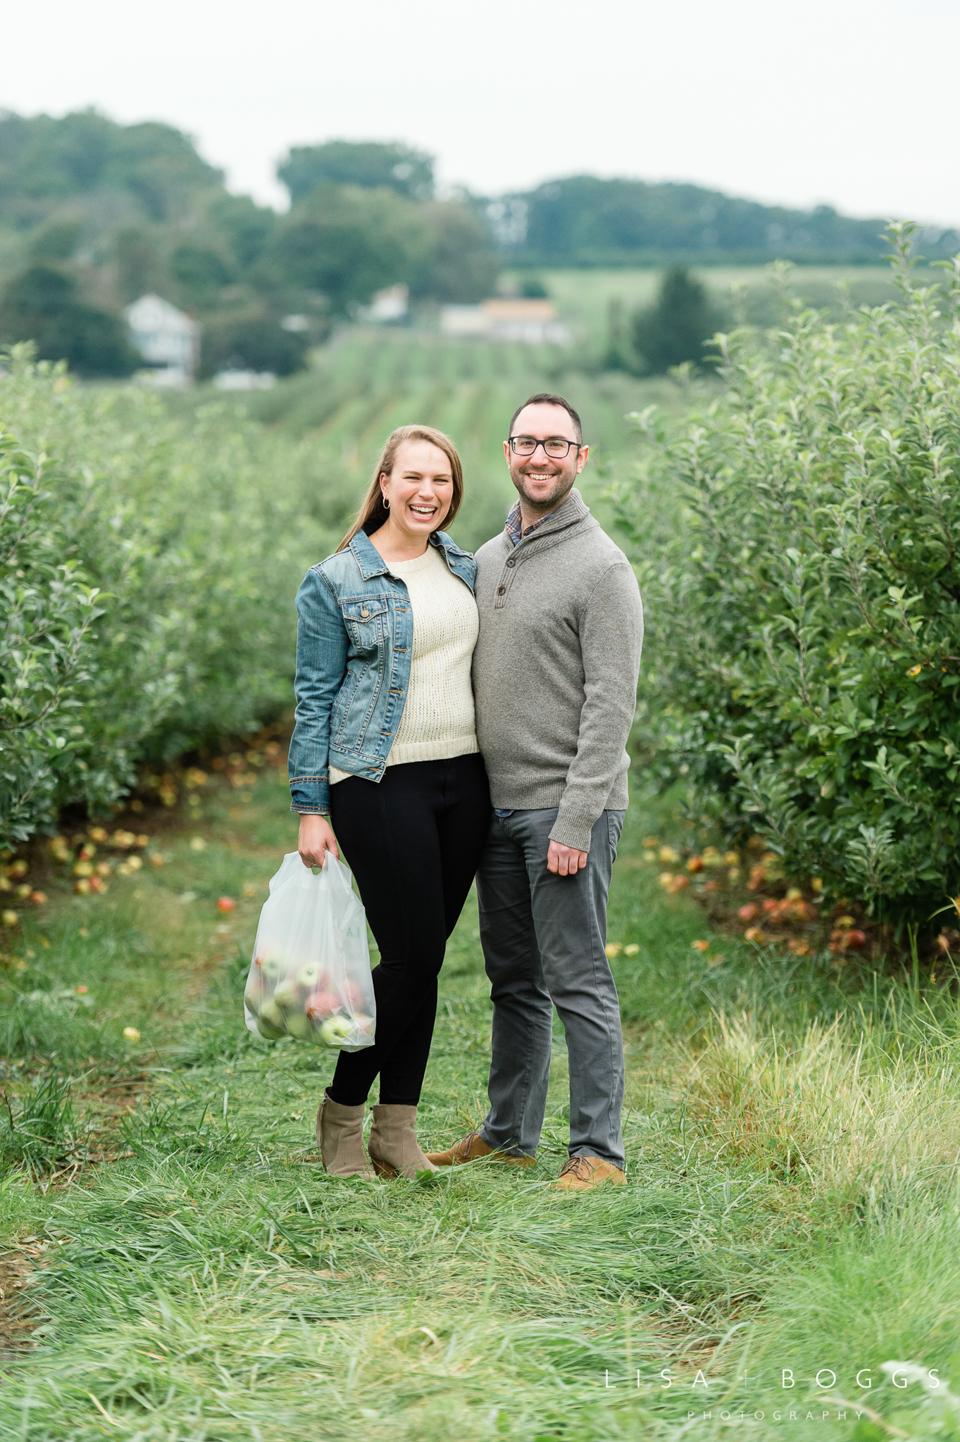 Jessica & Tom's Autumn Inspired Larriland Farm Engagement Sessio